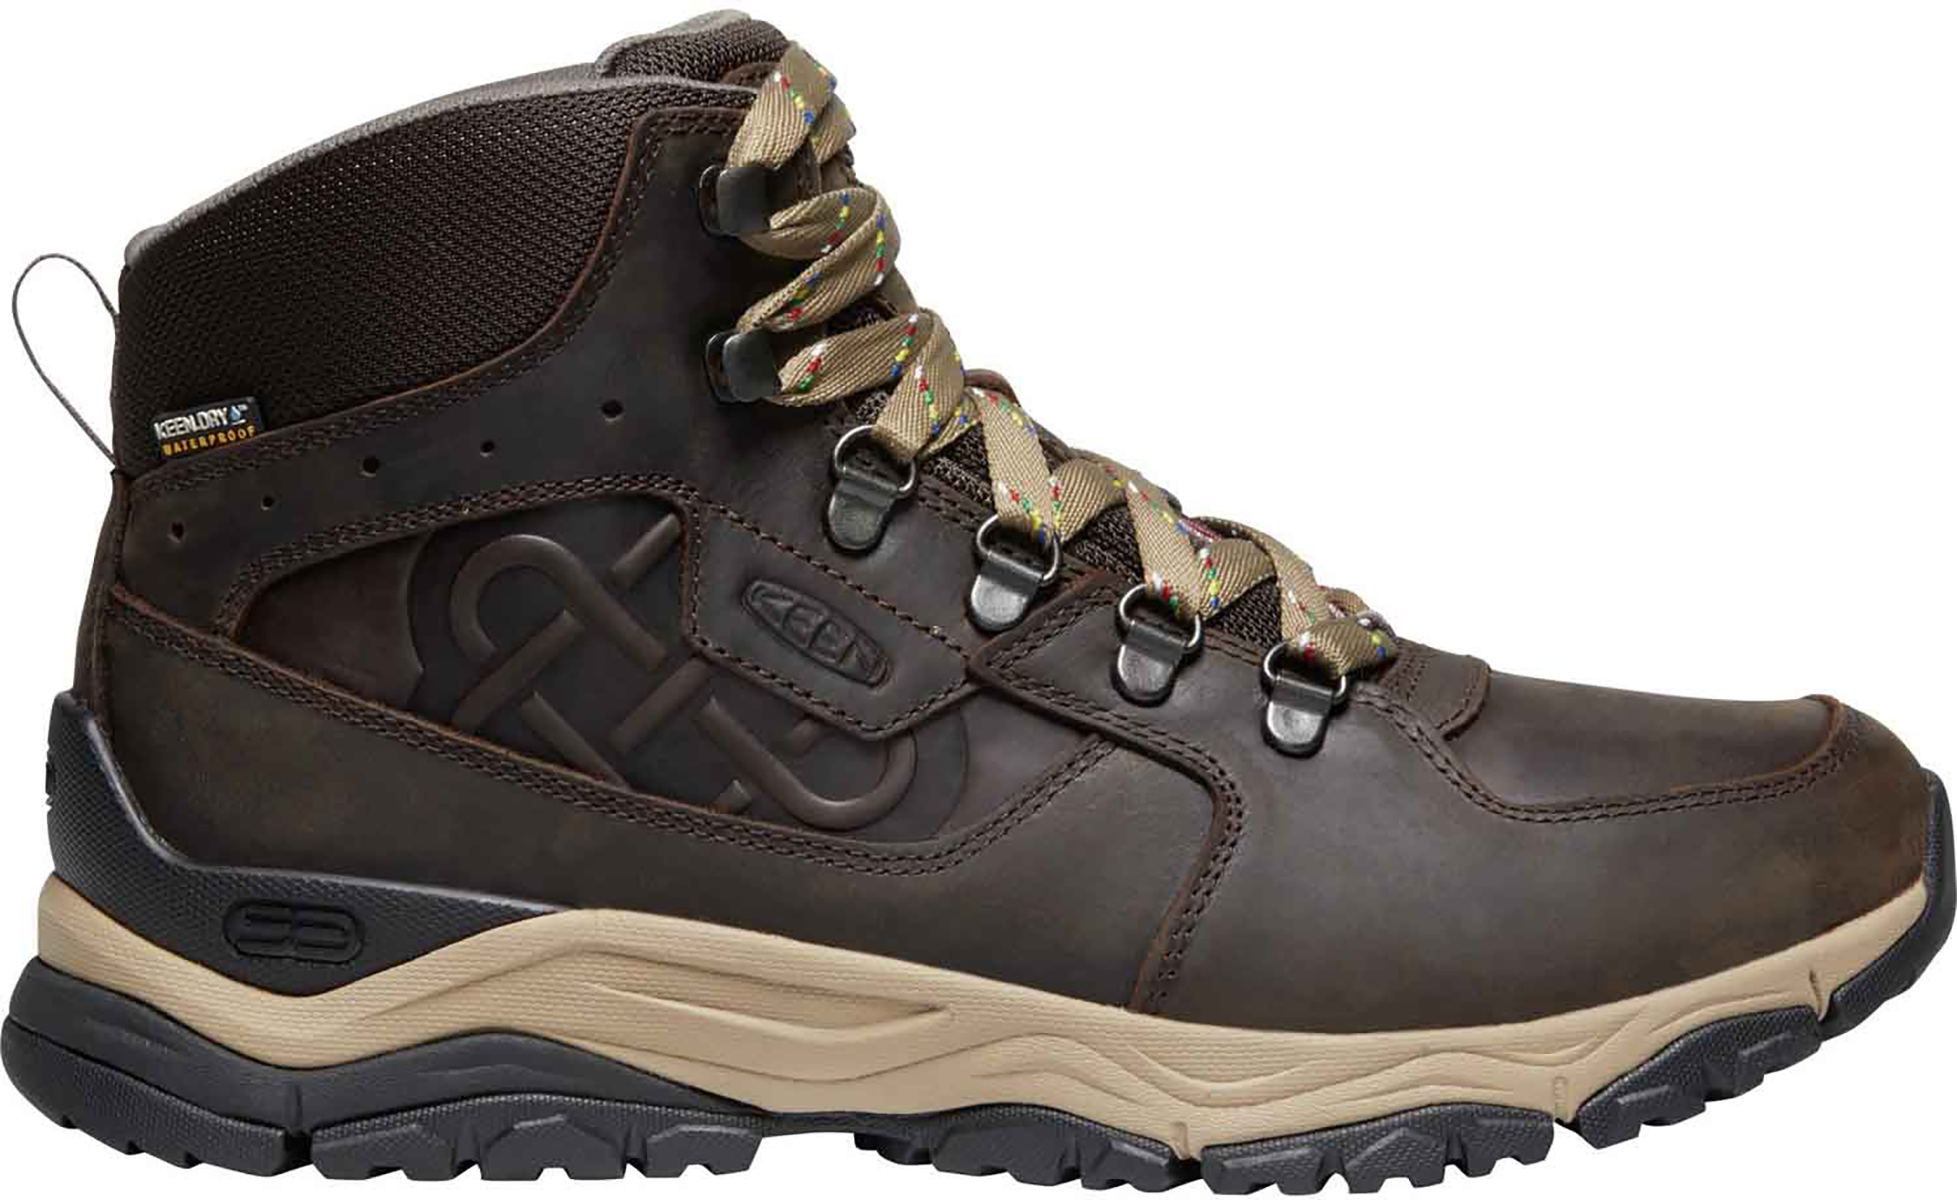 Keen Innate Leather Mid Boots | Running shoes